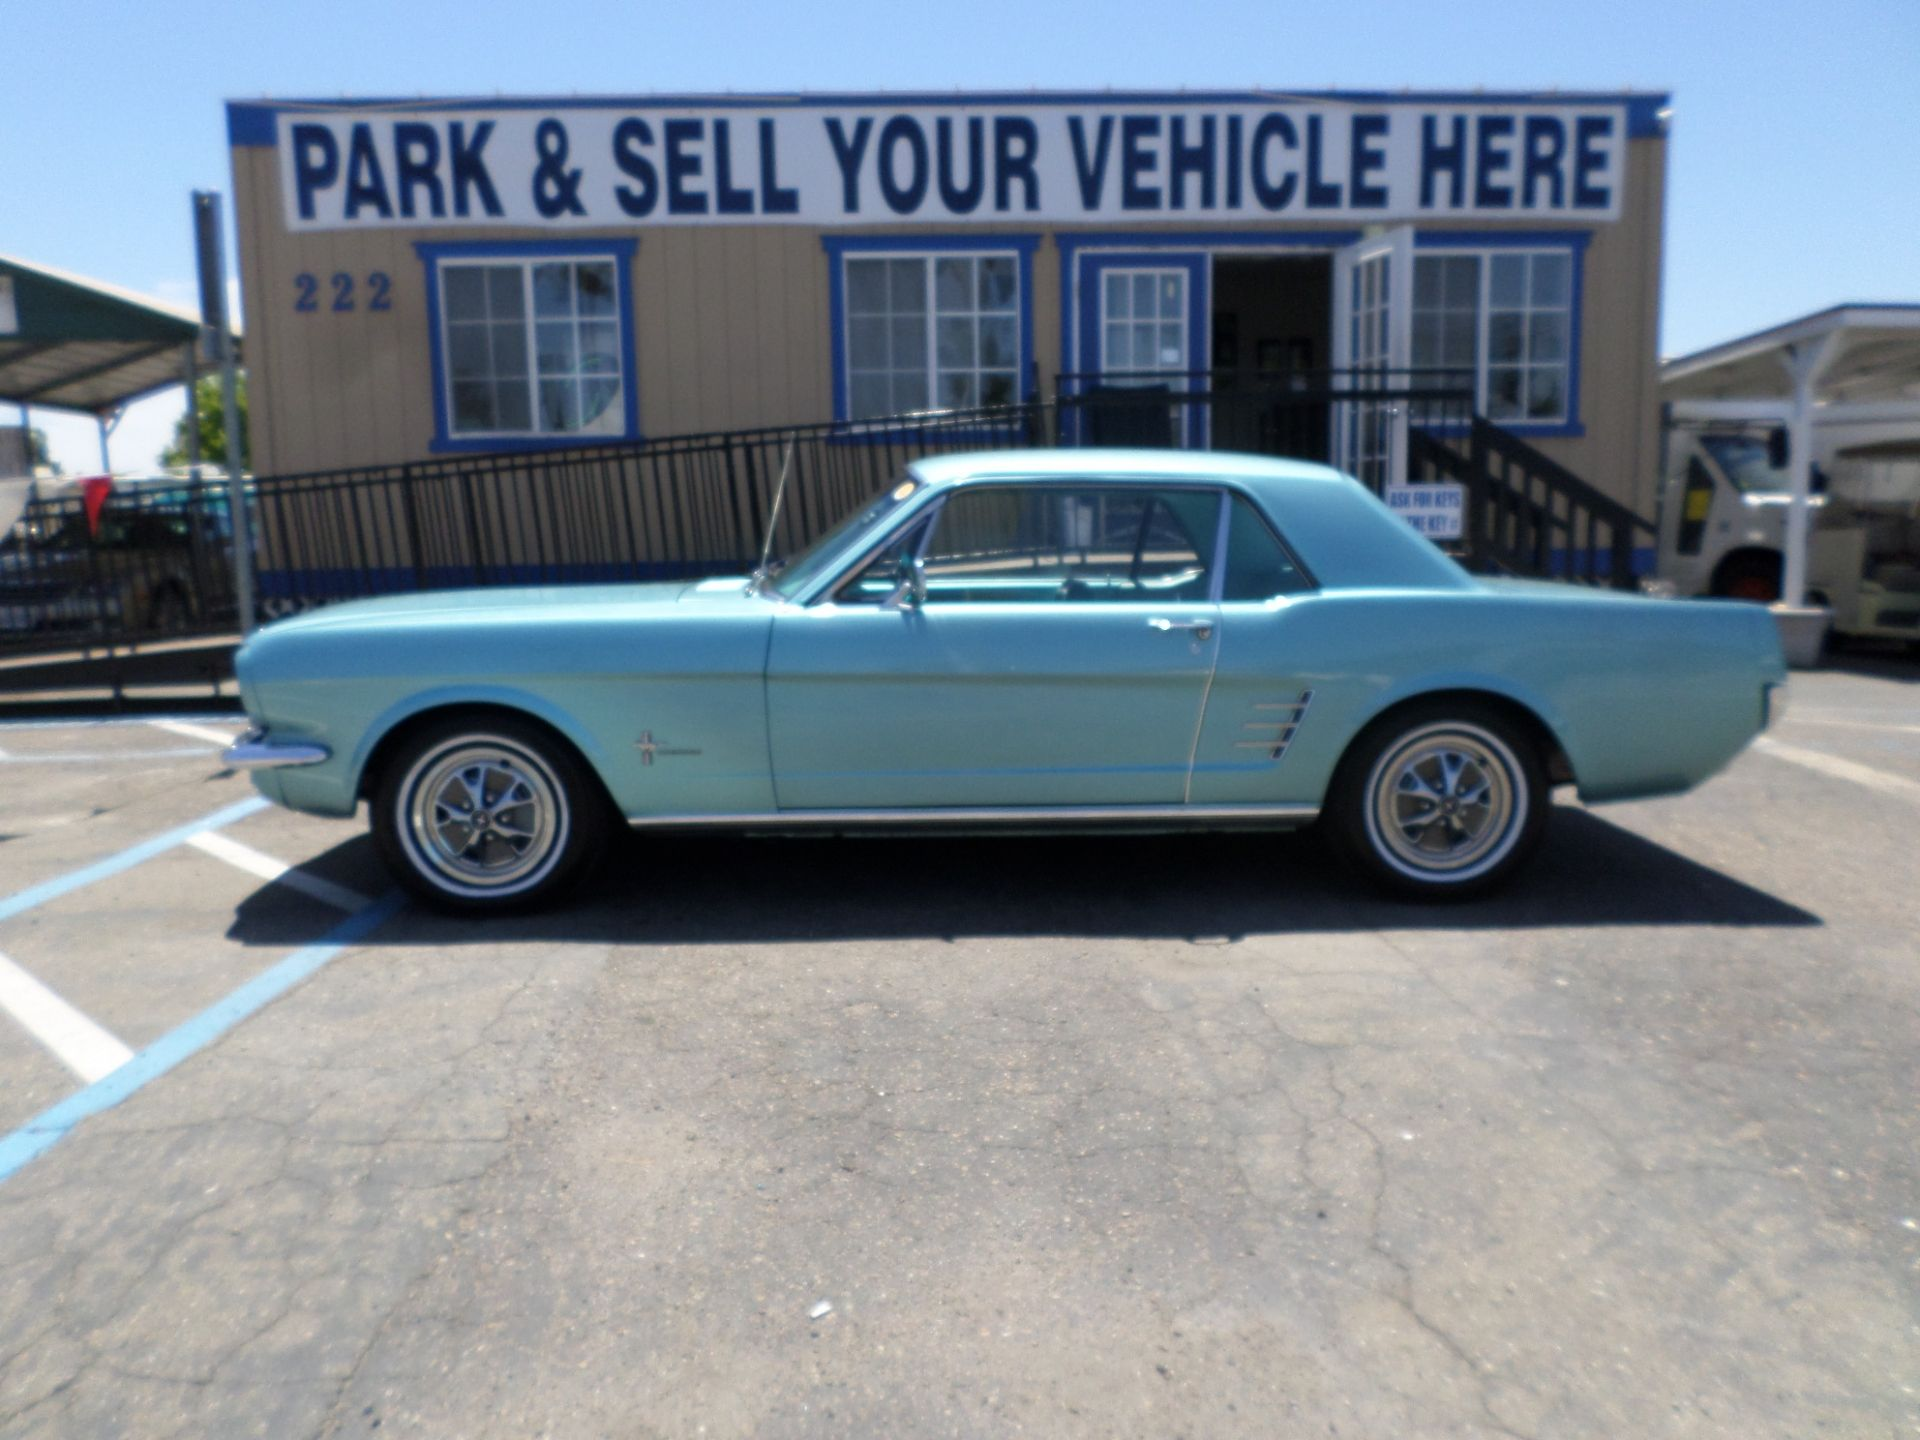 Classic Car For Sale 1966 Ford Mustang In Lodi Stockton Ca 1966 Ford Mustang Ford Mustang Car Ford Mustang